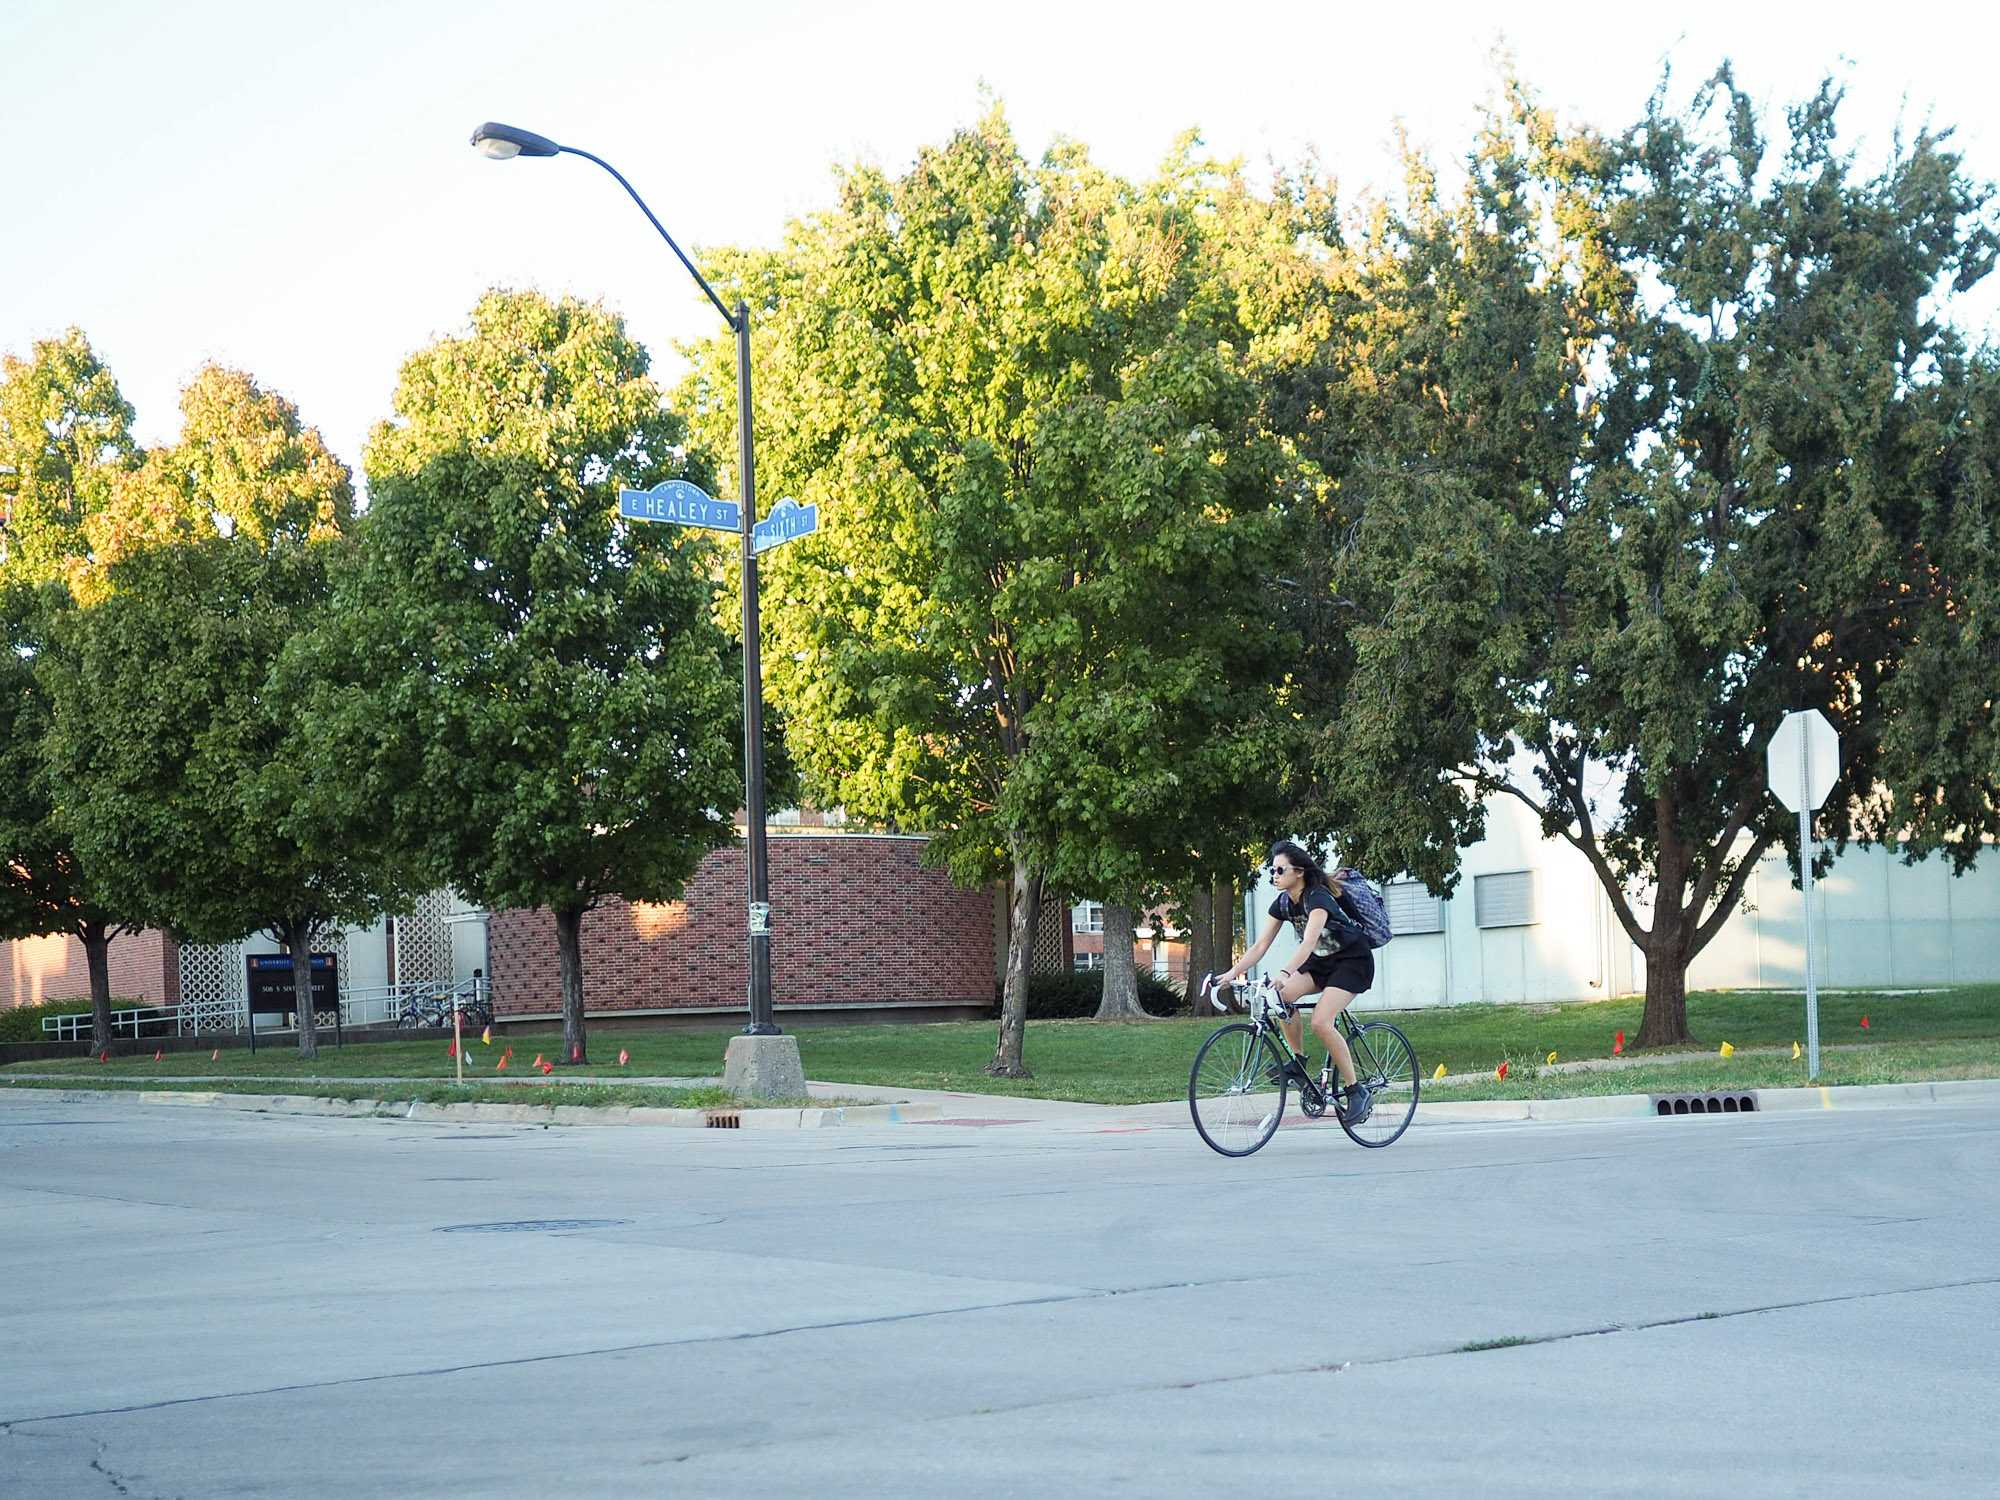 Student bikes through Sixth and Healey intersection in Champaign, IL. October 11, 2016.